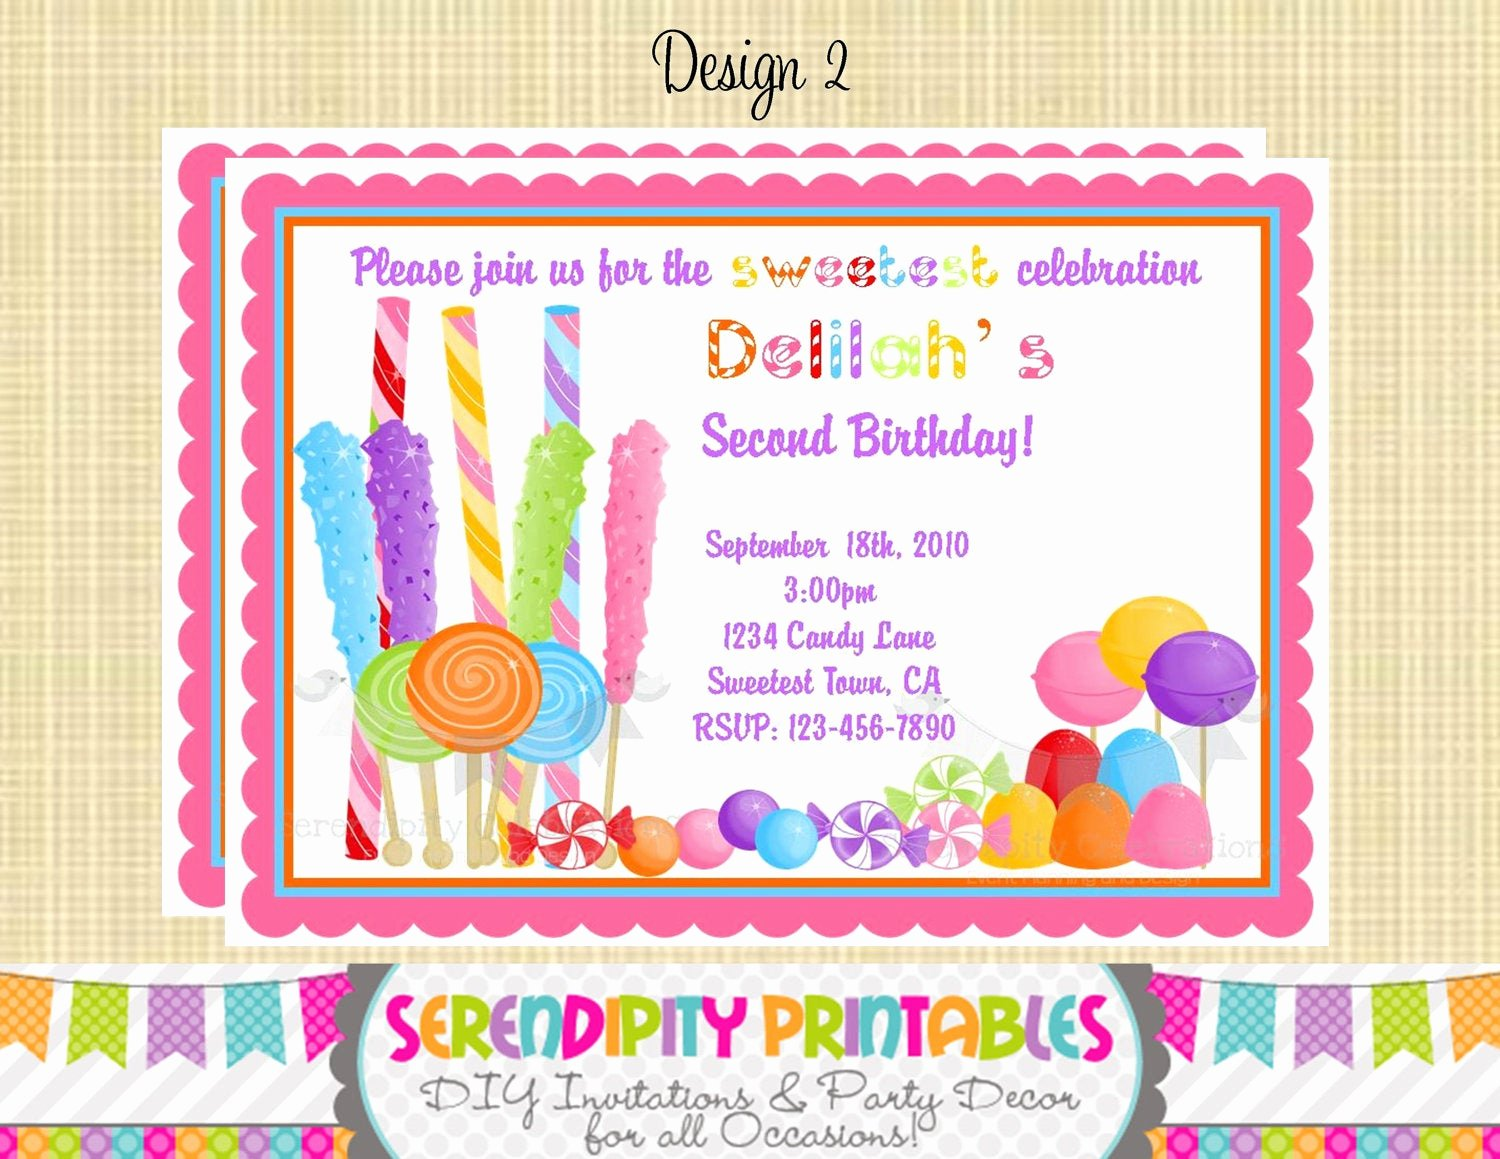 Free Printable Candyland Invitations Inspirational Candyland Invitation Use for Birthday Baby Shower Birth